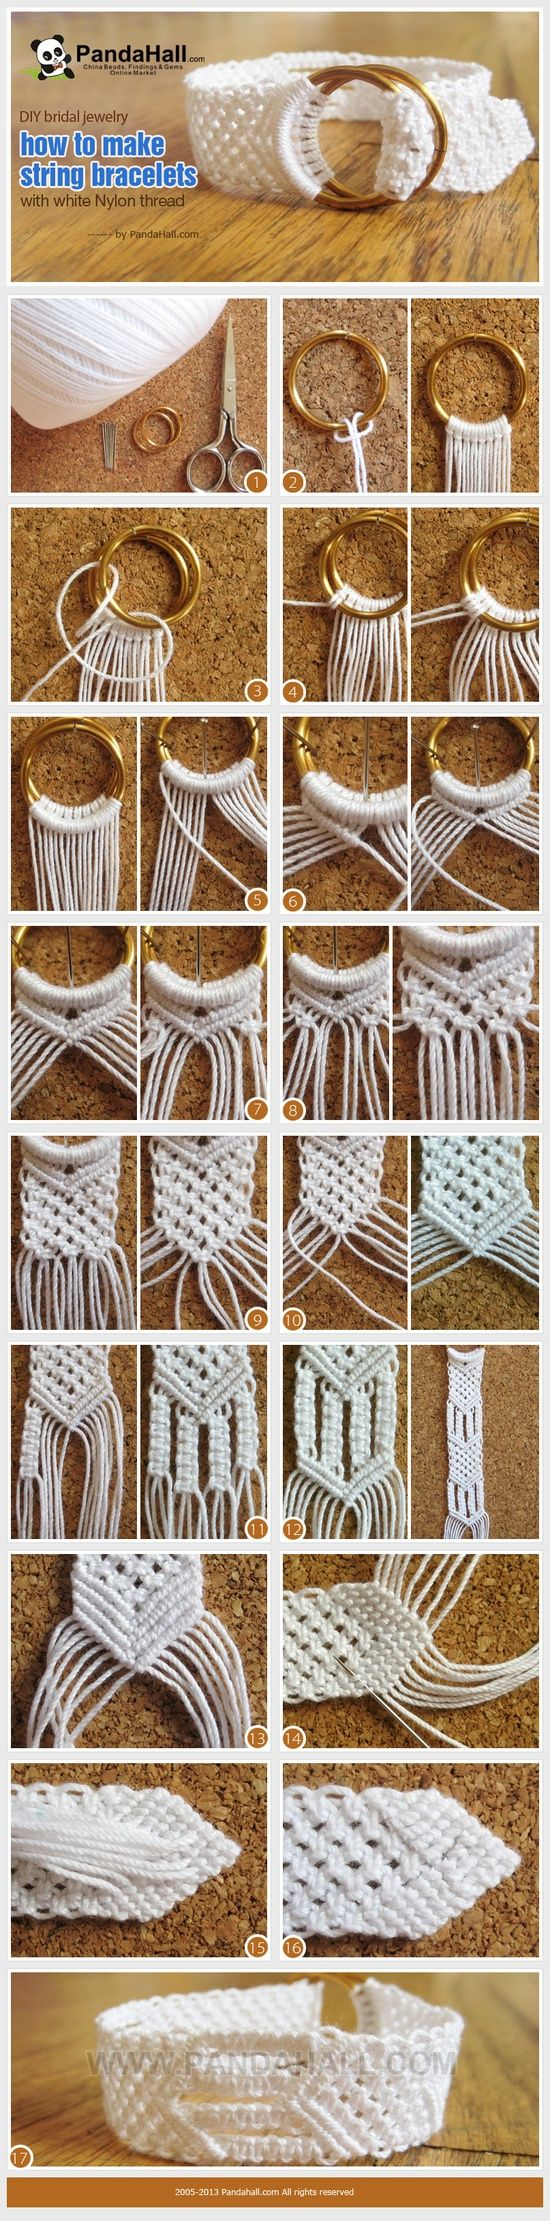 #macrame is BACK! #DIY #bracelet http://media-cache-ak3.pinimg.com/originals/d8/1b/2a/d81b2af085d60daf97d7bc30be80447c.jpg